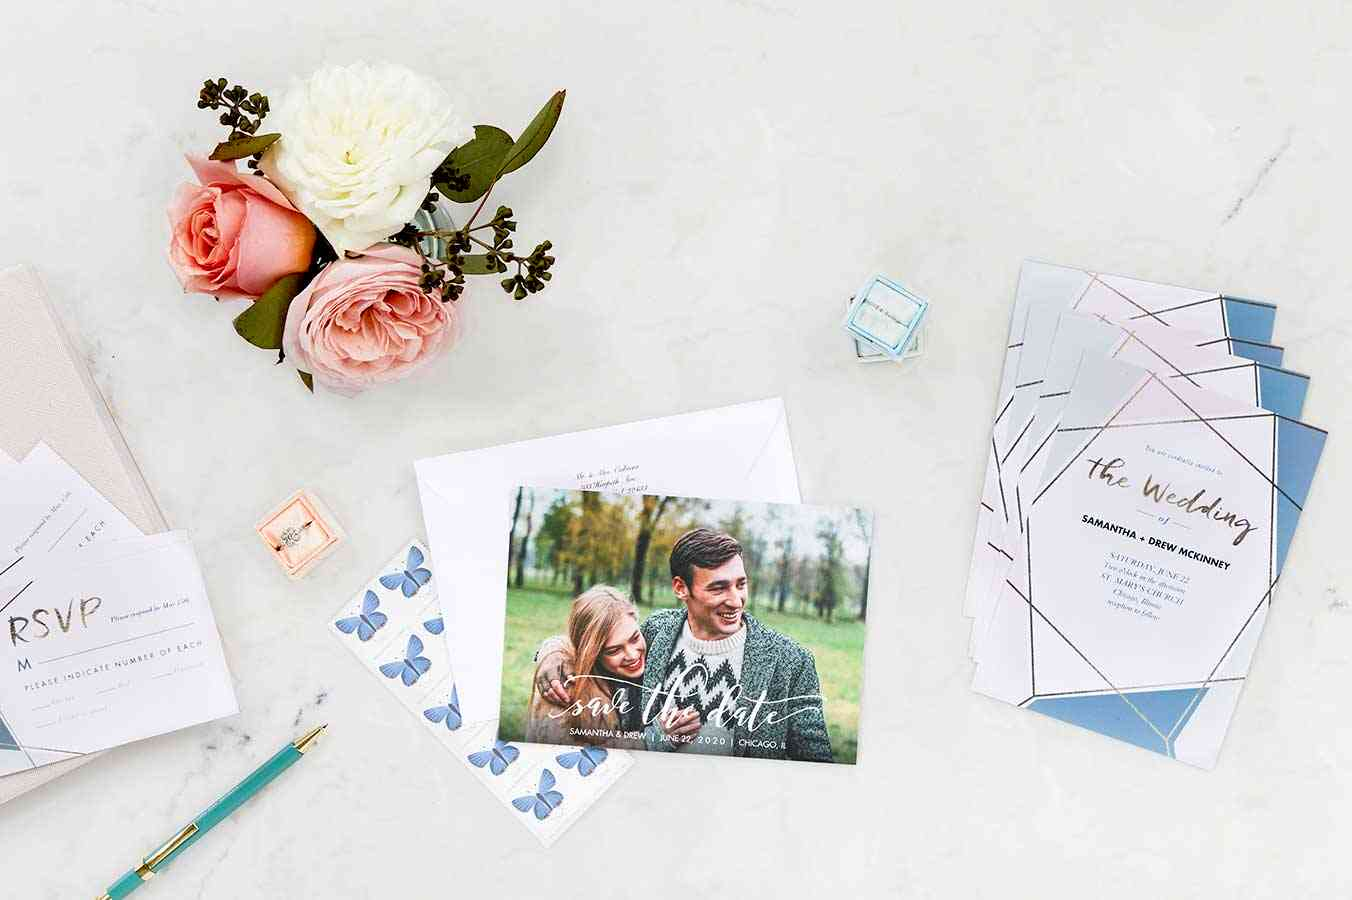 Wedding Gifts - Create Custom Wedding Photo Gifts  Walgreens Photo